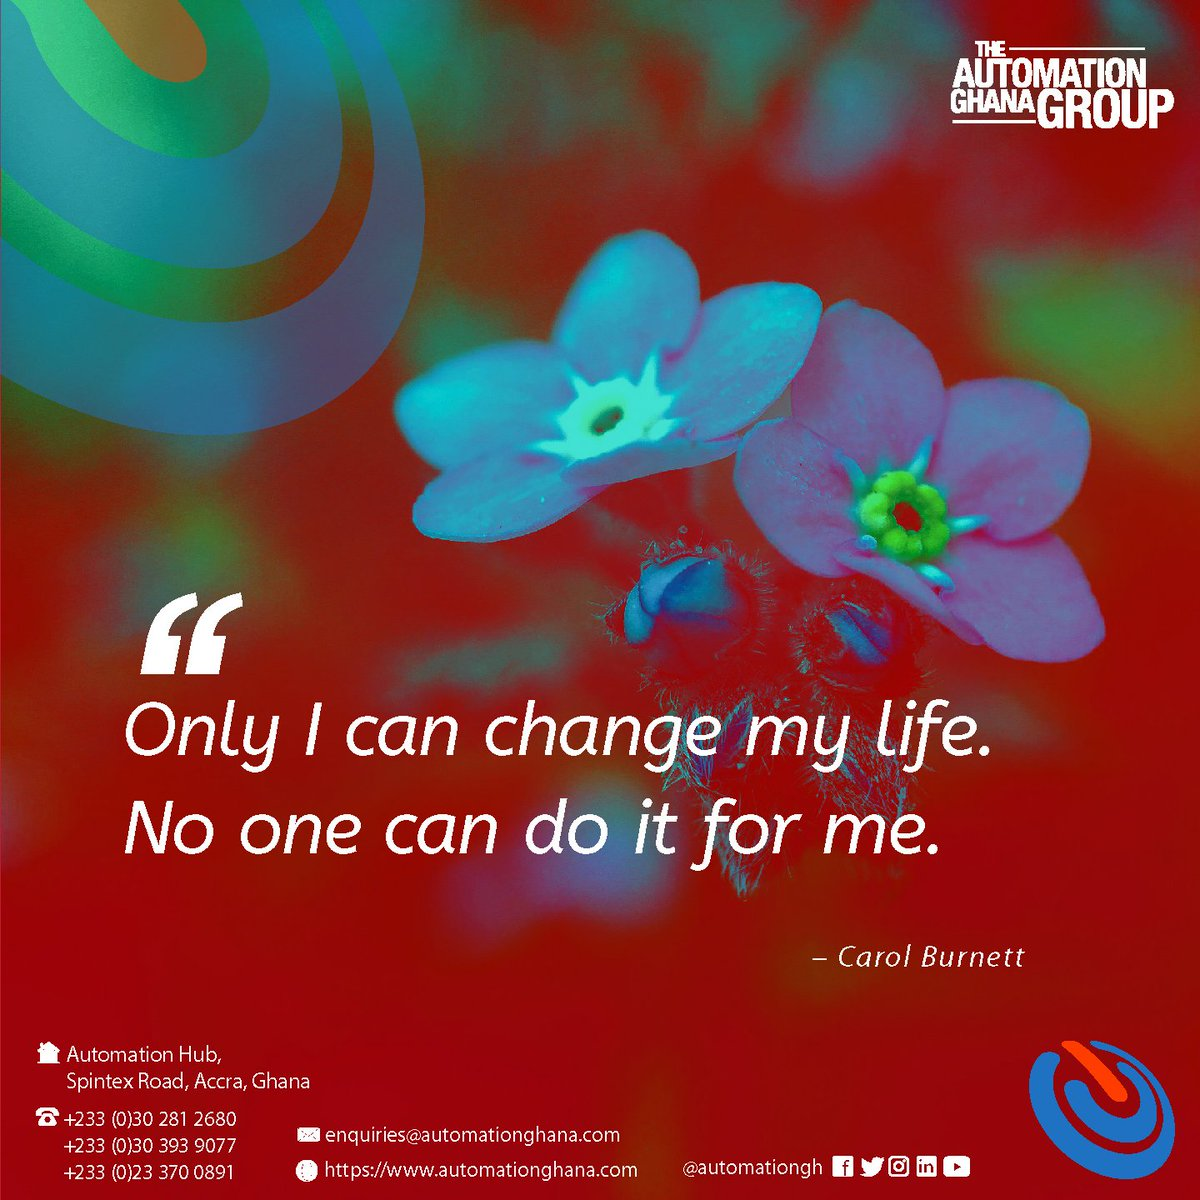 Just Remember; Only you can change your life#tagg #inspirationalquotes #smartsolutions pic.twitter.com/n6XinXY8uD